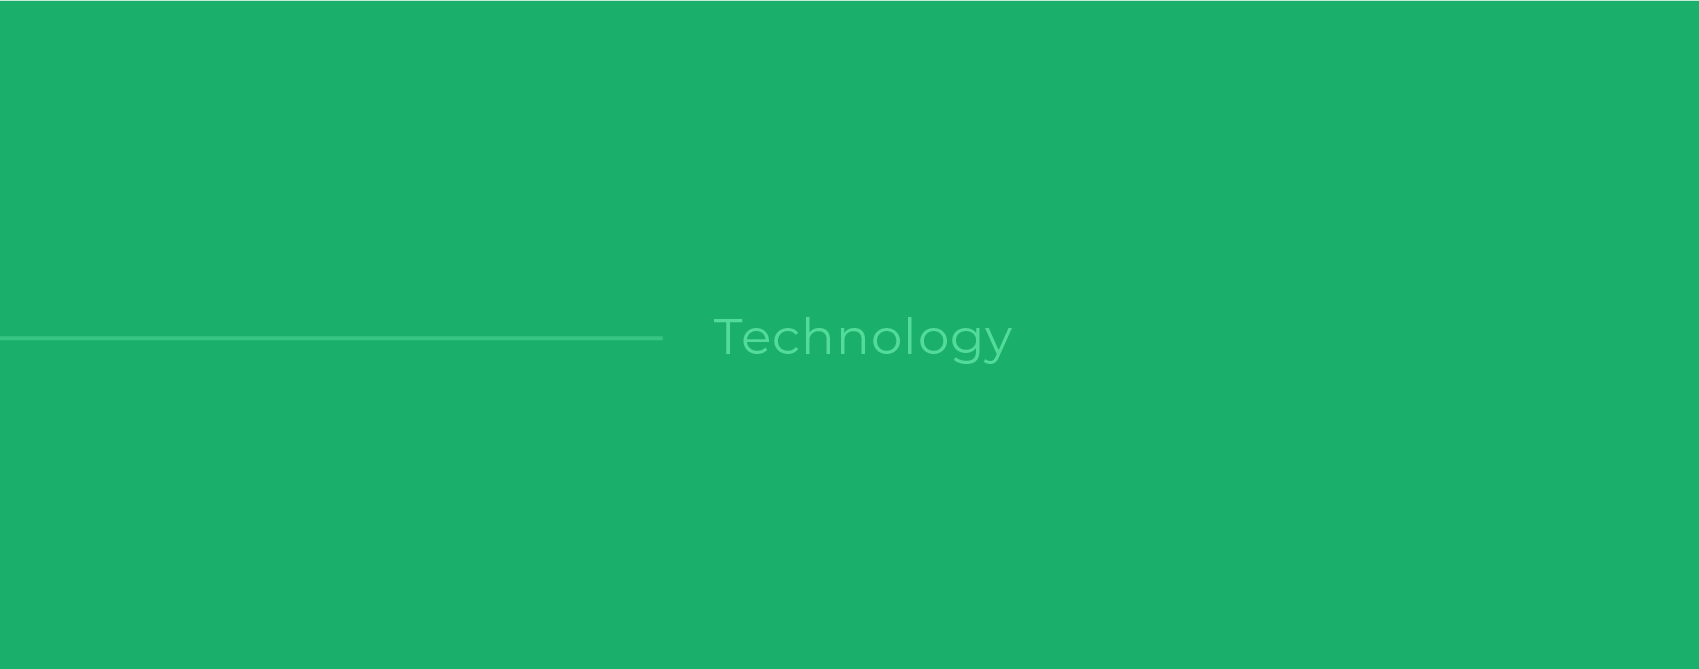 2019News_CategoryHeaders-Technology-1